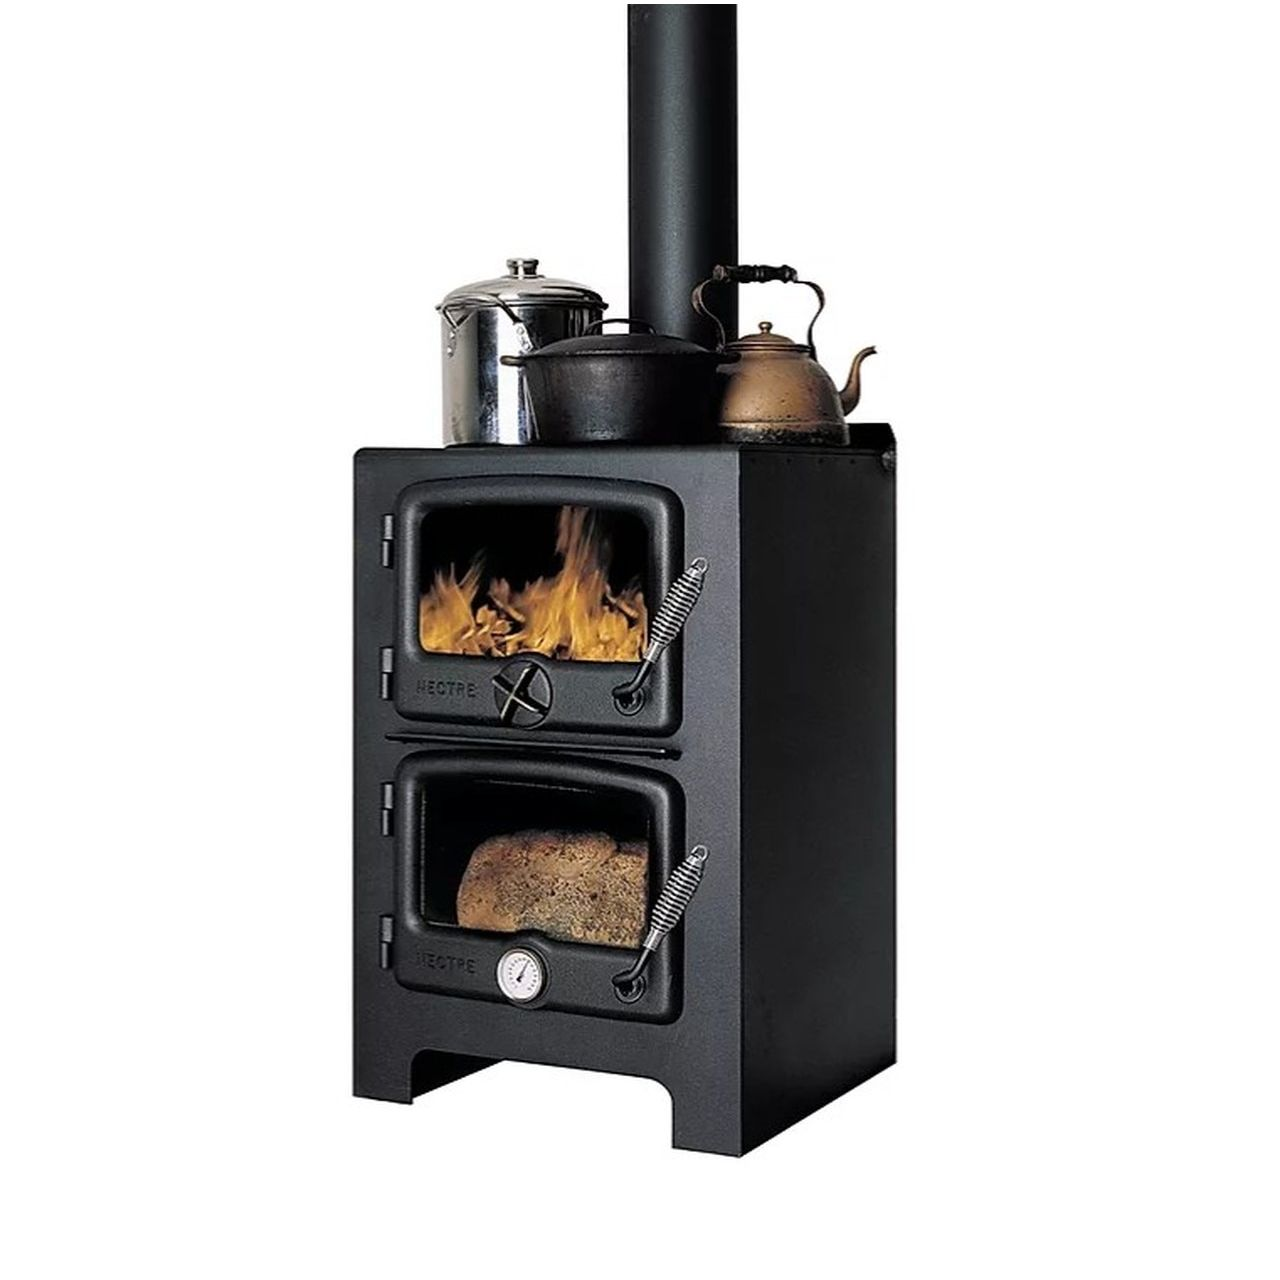 Nectre N350 30000 BTU Wood-Fired Oven